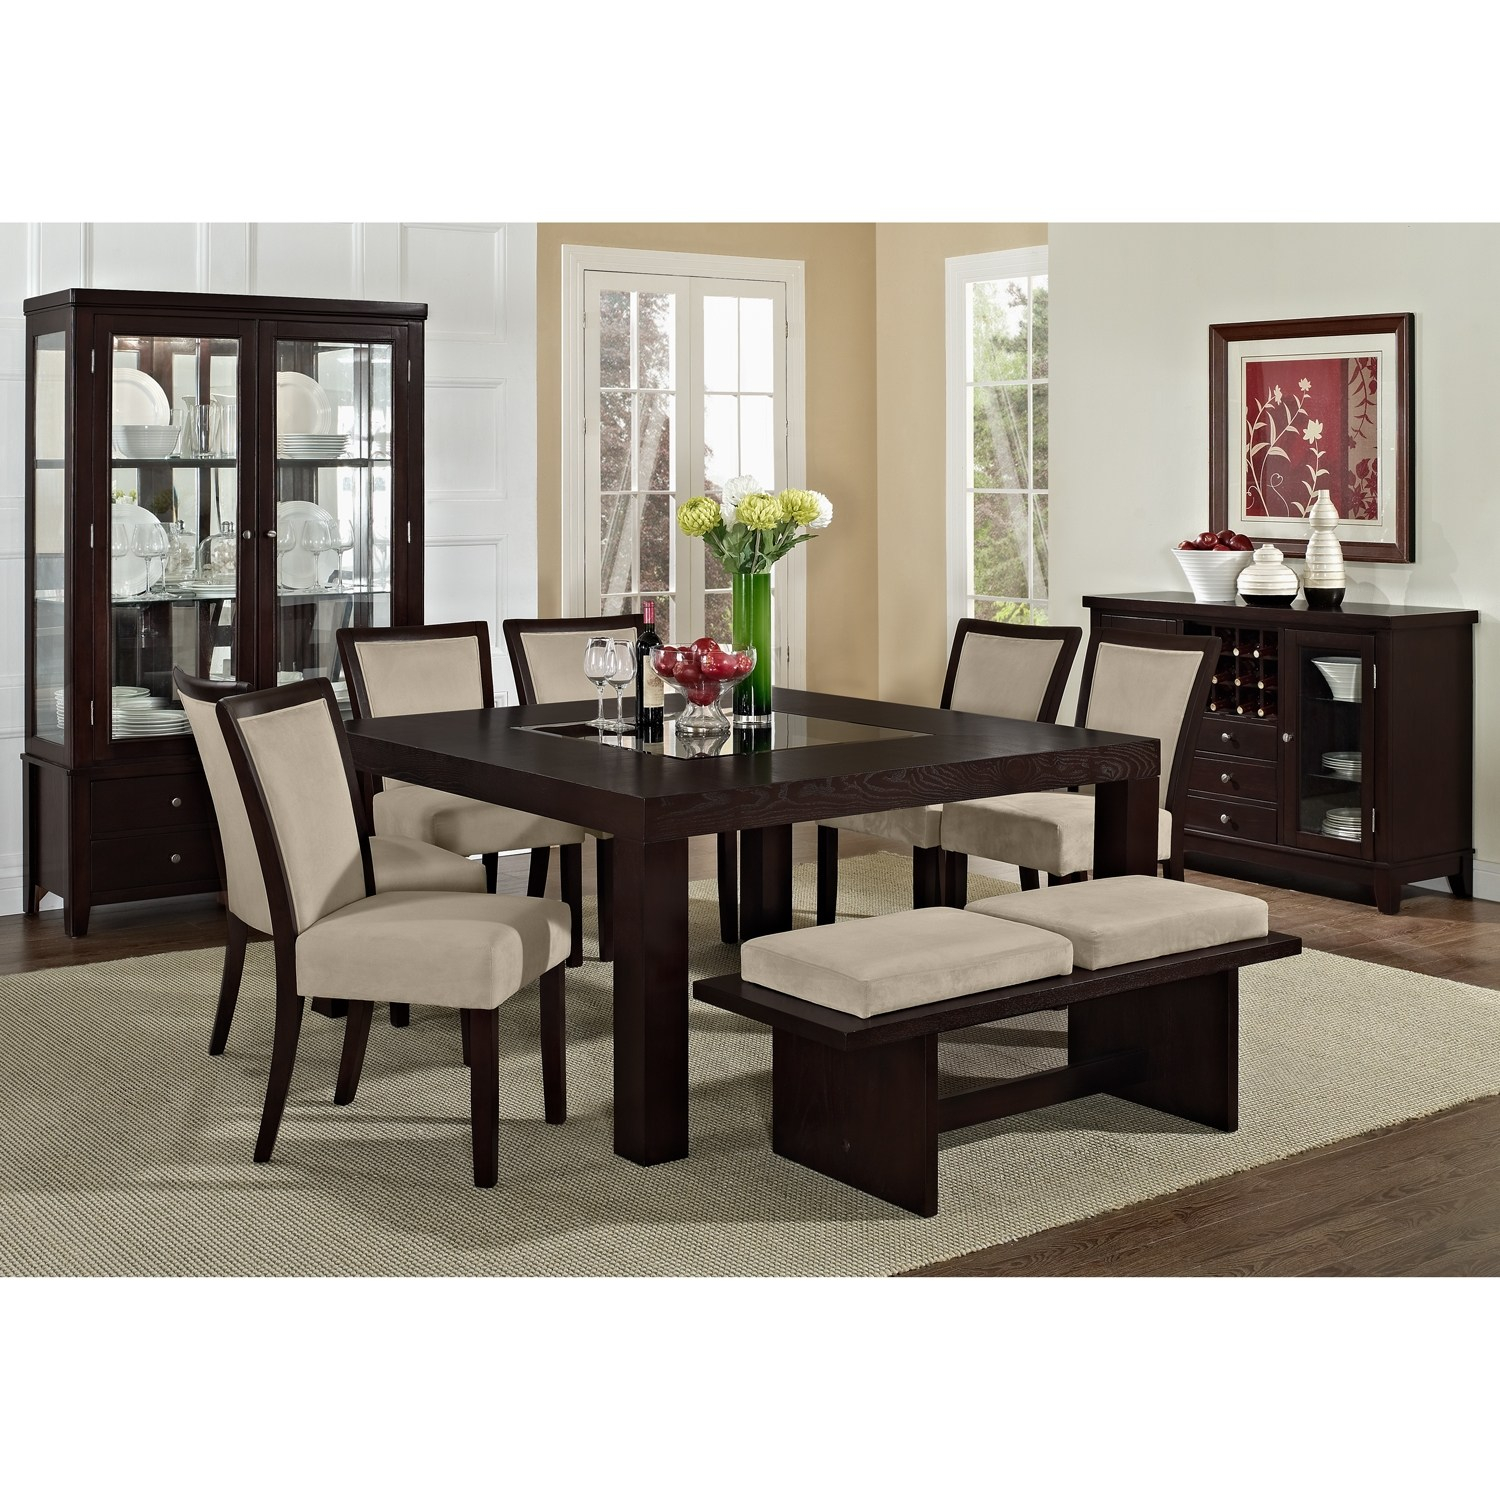 Value City Furniture Dining Room Sets Fetching Value City Dining regarding 10 Awesome Designs of How to Make Value City Living Room Sets